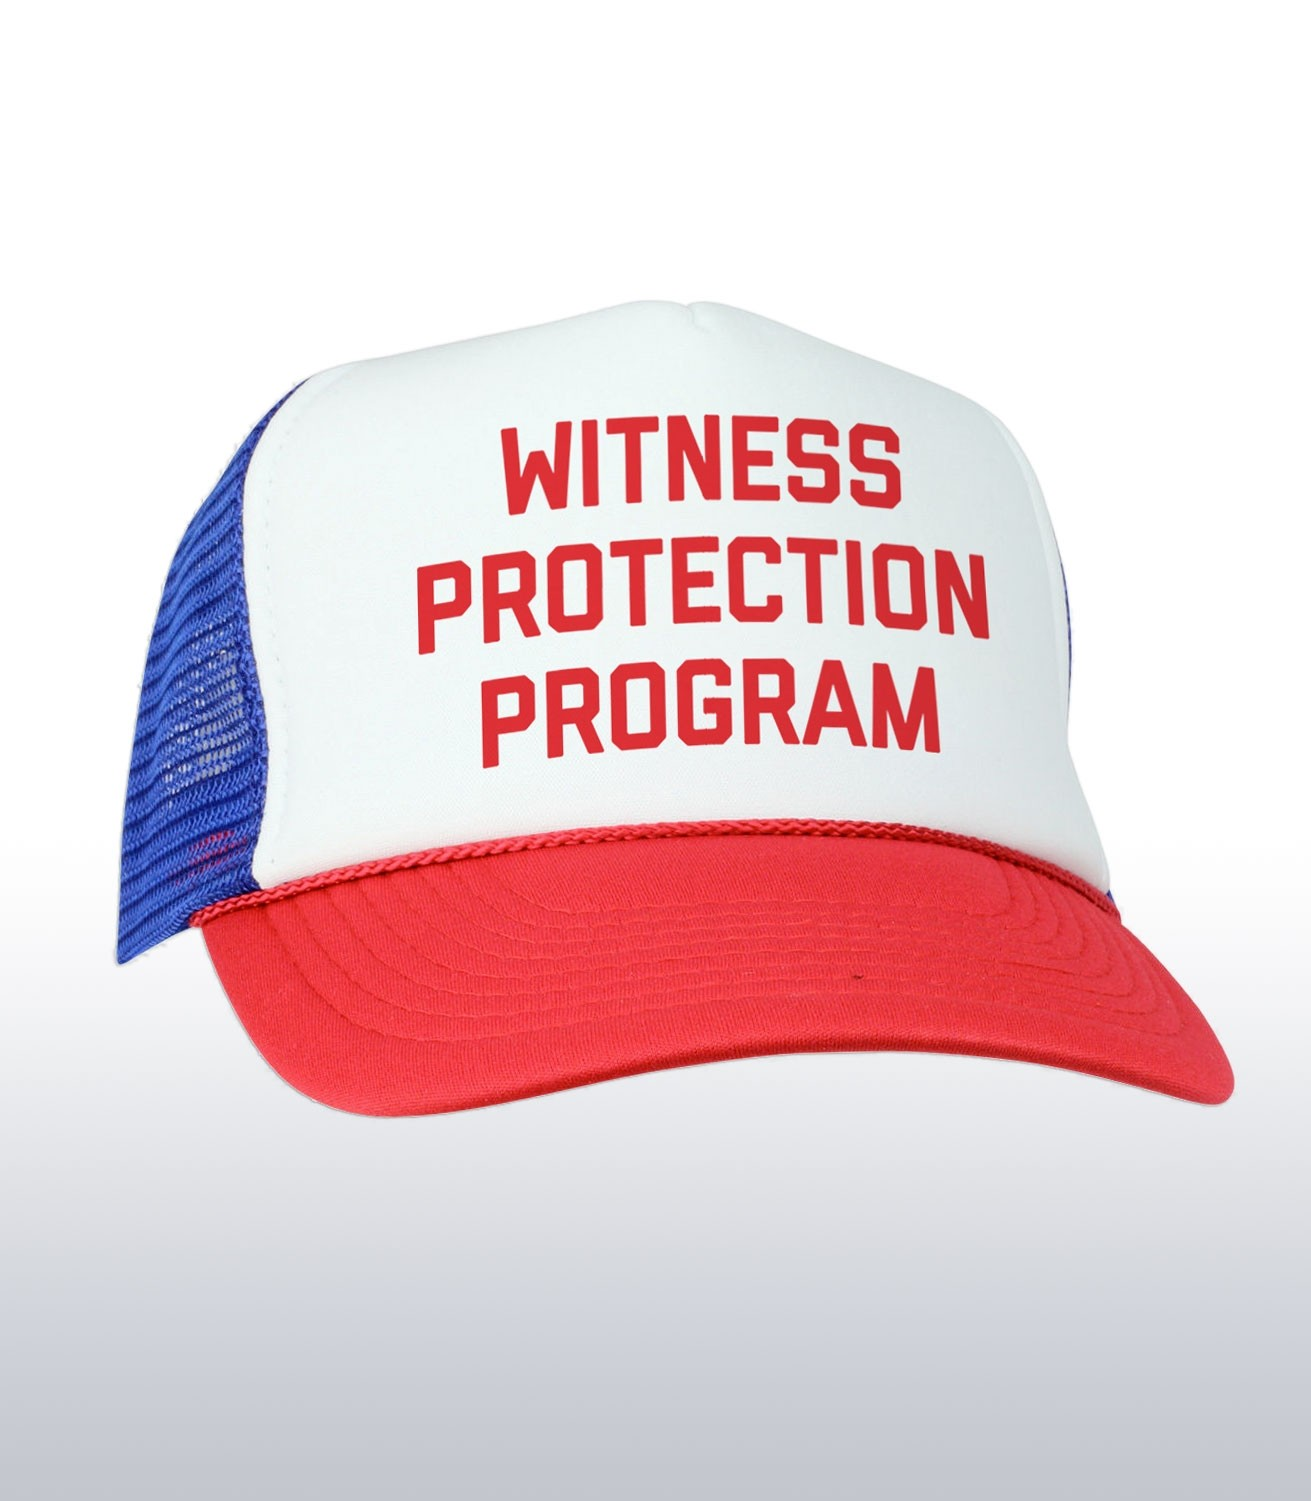 67db9f9491ee0 Witness Protection Program Funny Mafia Trucker Cap   Hat